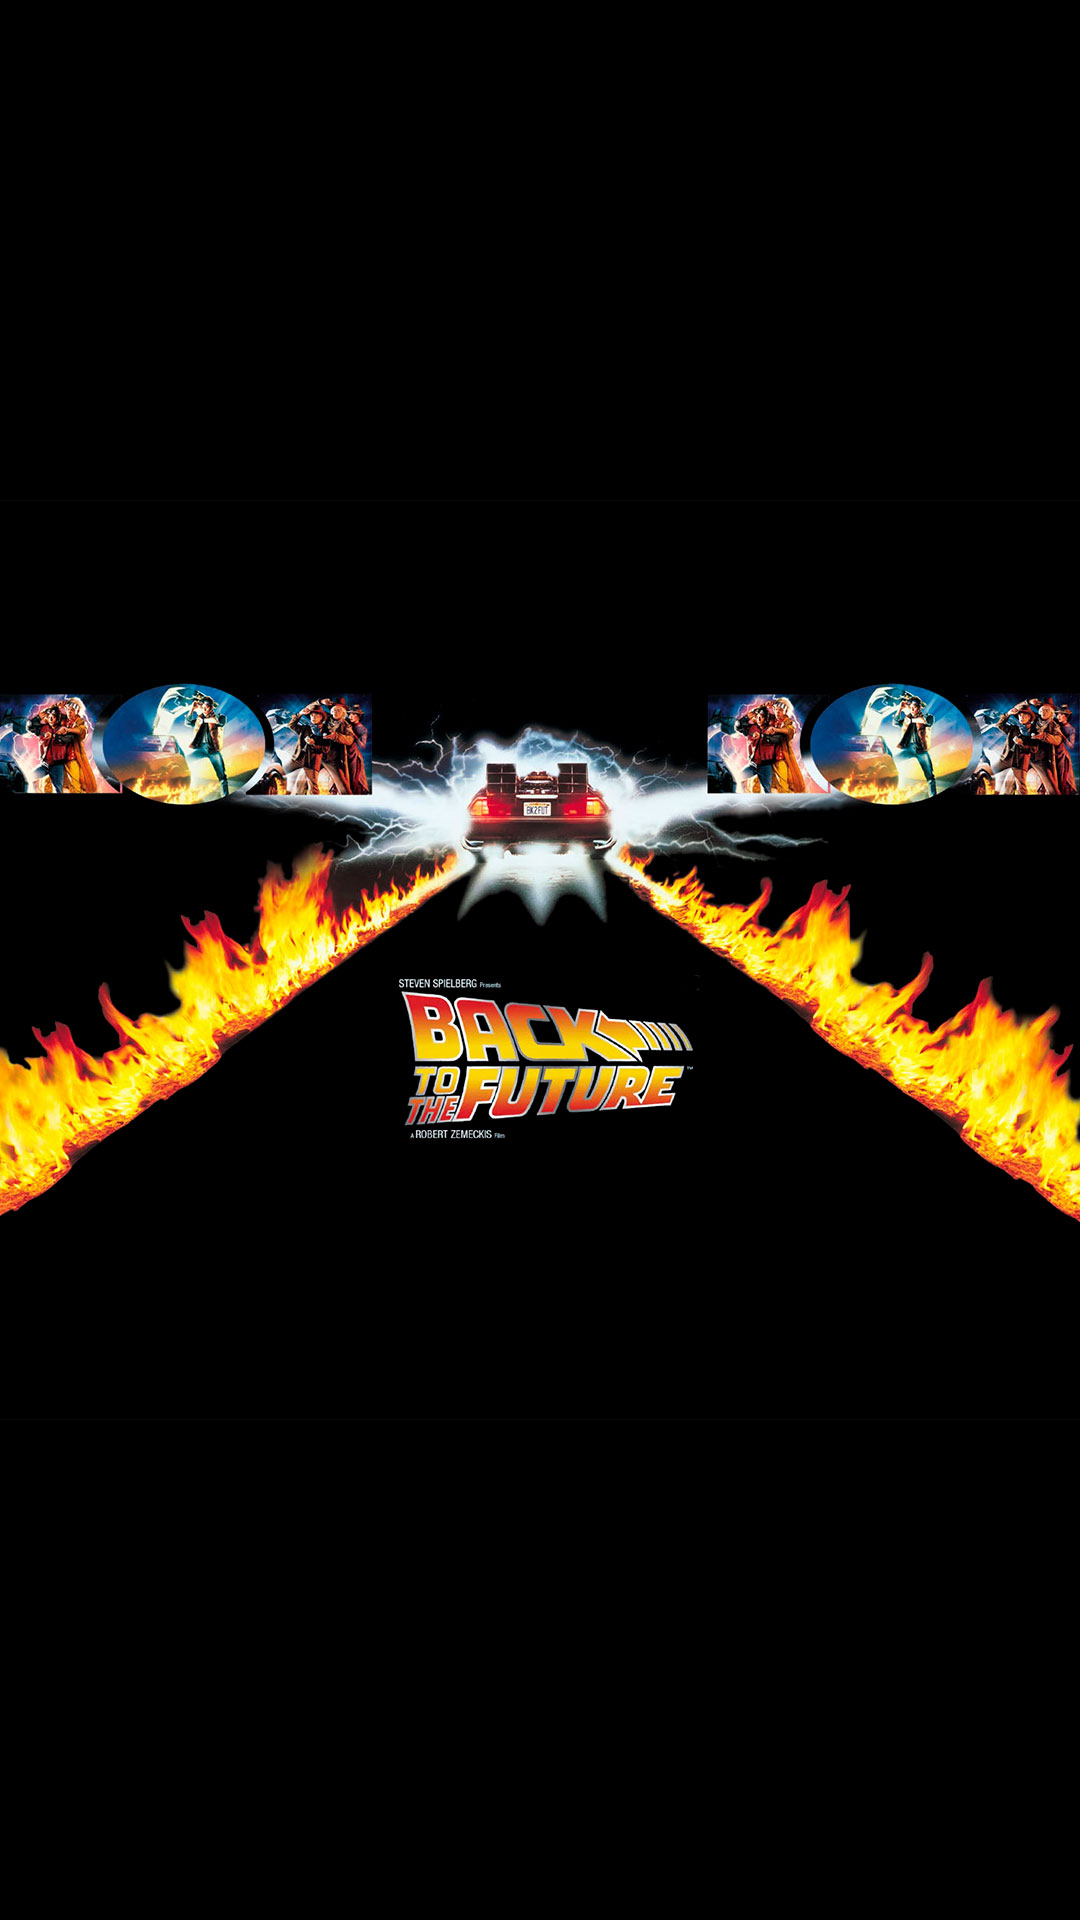 Cartoon Girl Wallpapers Free Download Back To The Future Wallpaper For Iphone X 8 7 6 Free